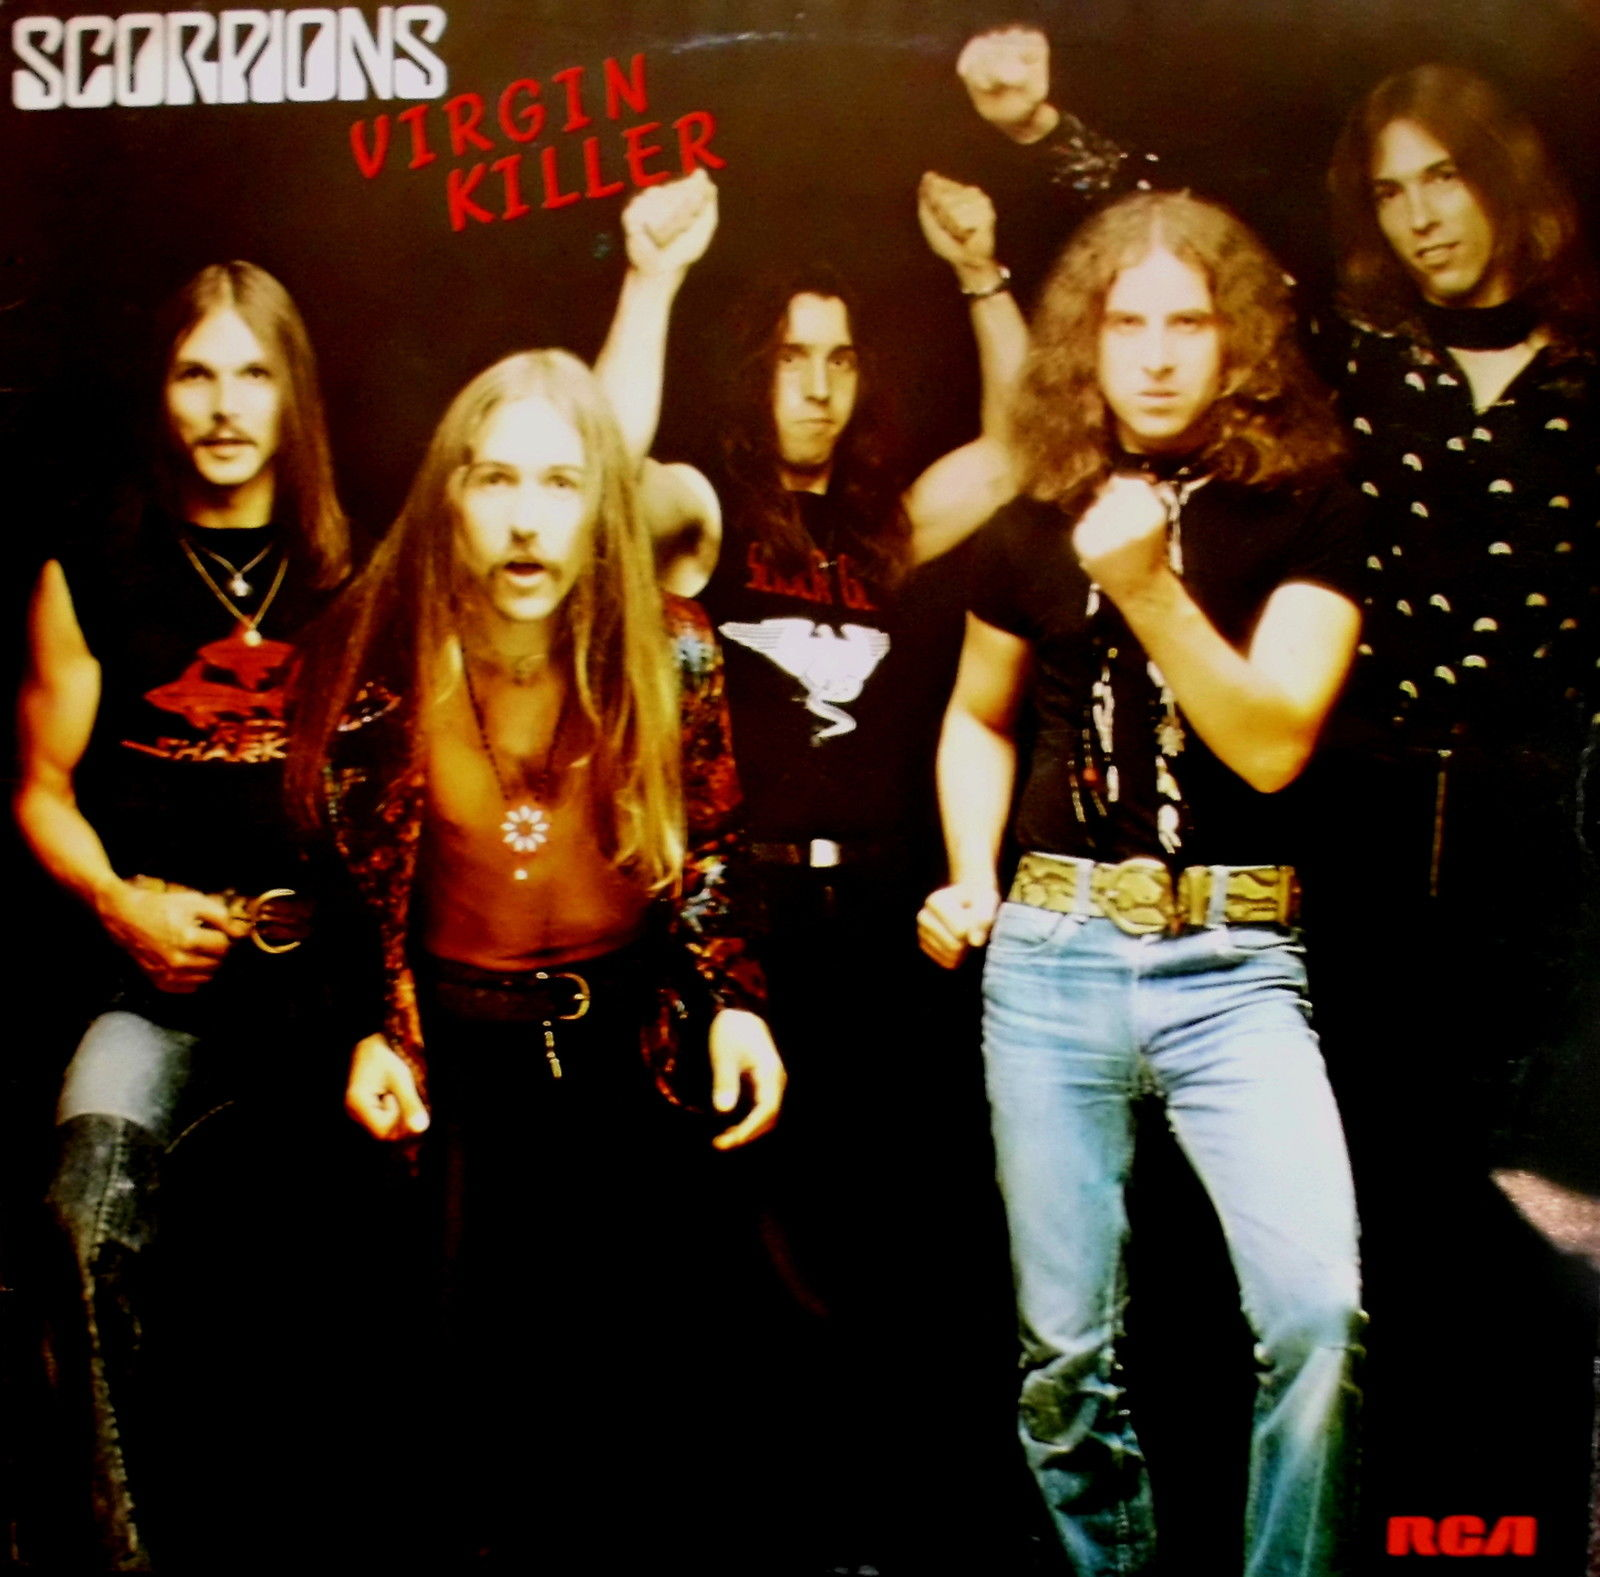 scorpions-virgin-killer-buona